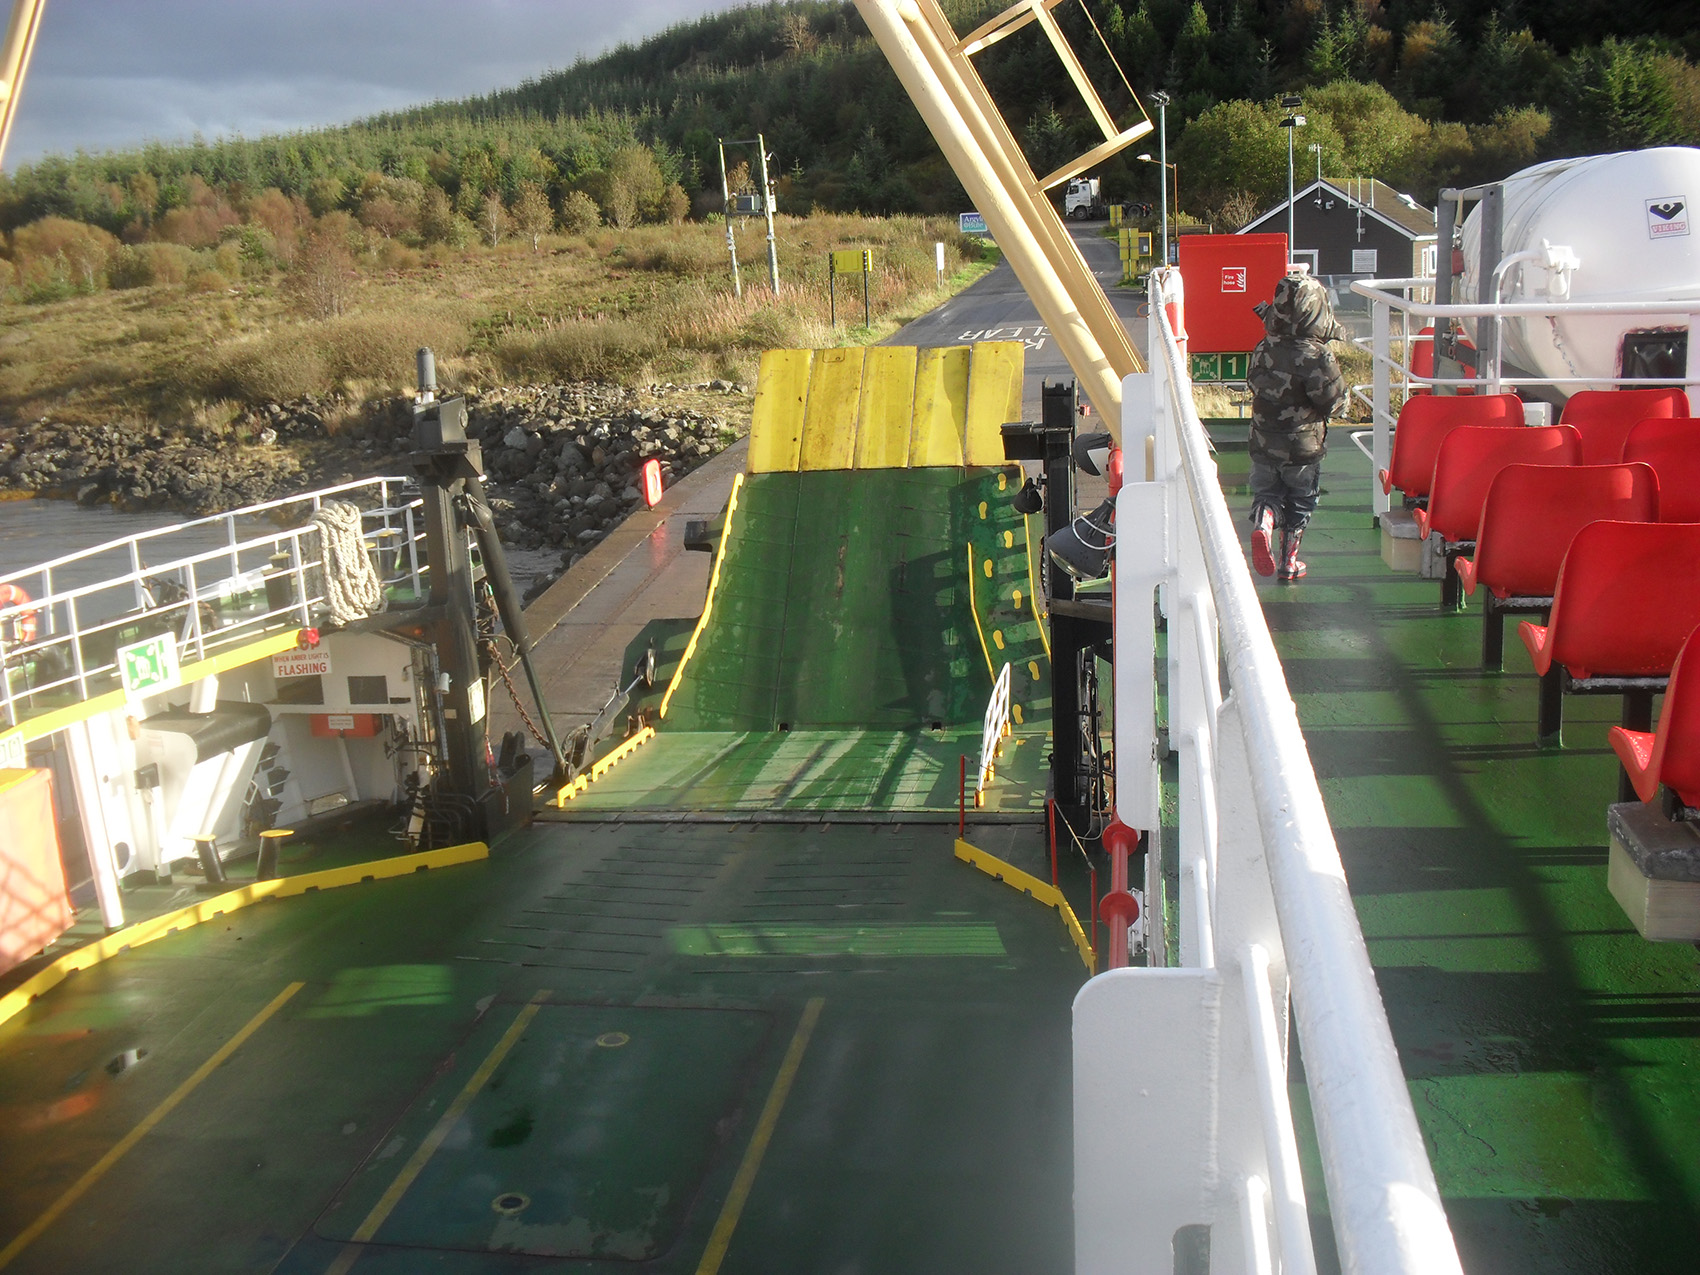 Mull ferry docking